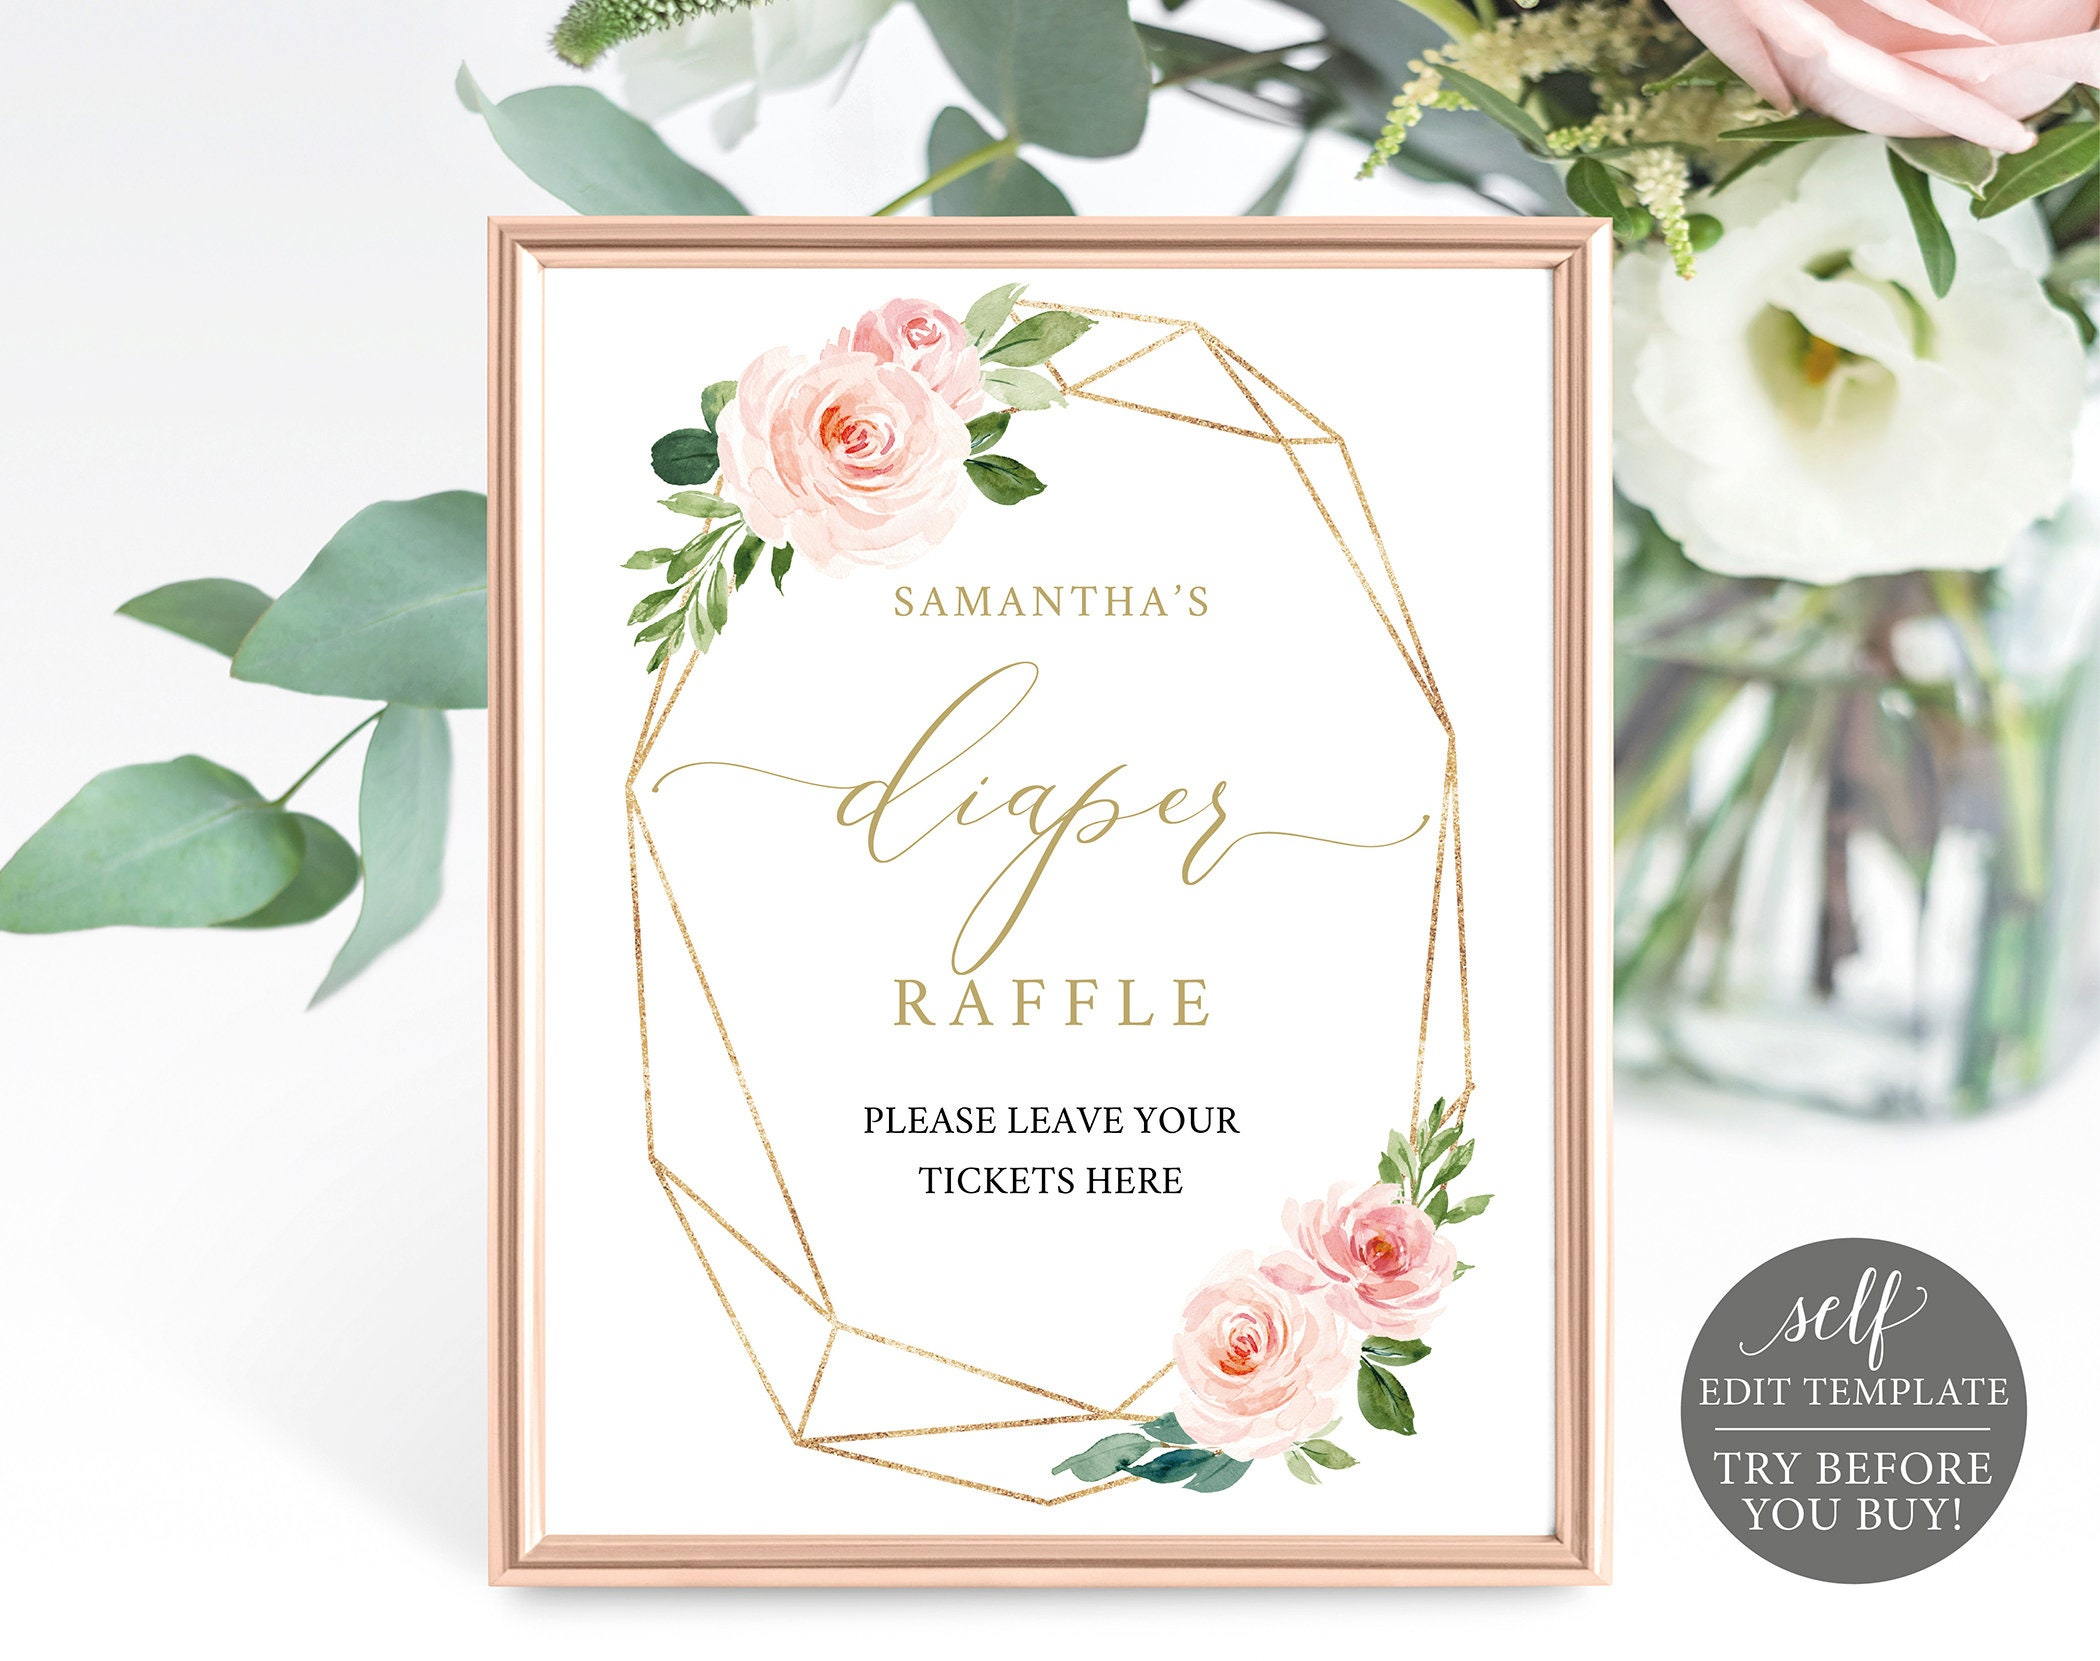 image regarding Free Printable Diaper Raffle Ticket Template Download titled Diaper Raffle Indicator Template, Raffle Ticket Printable, 100